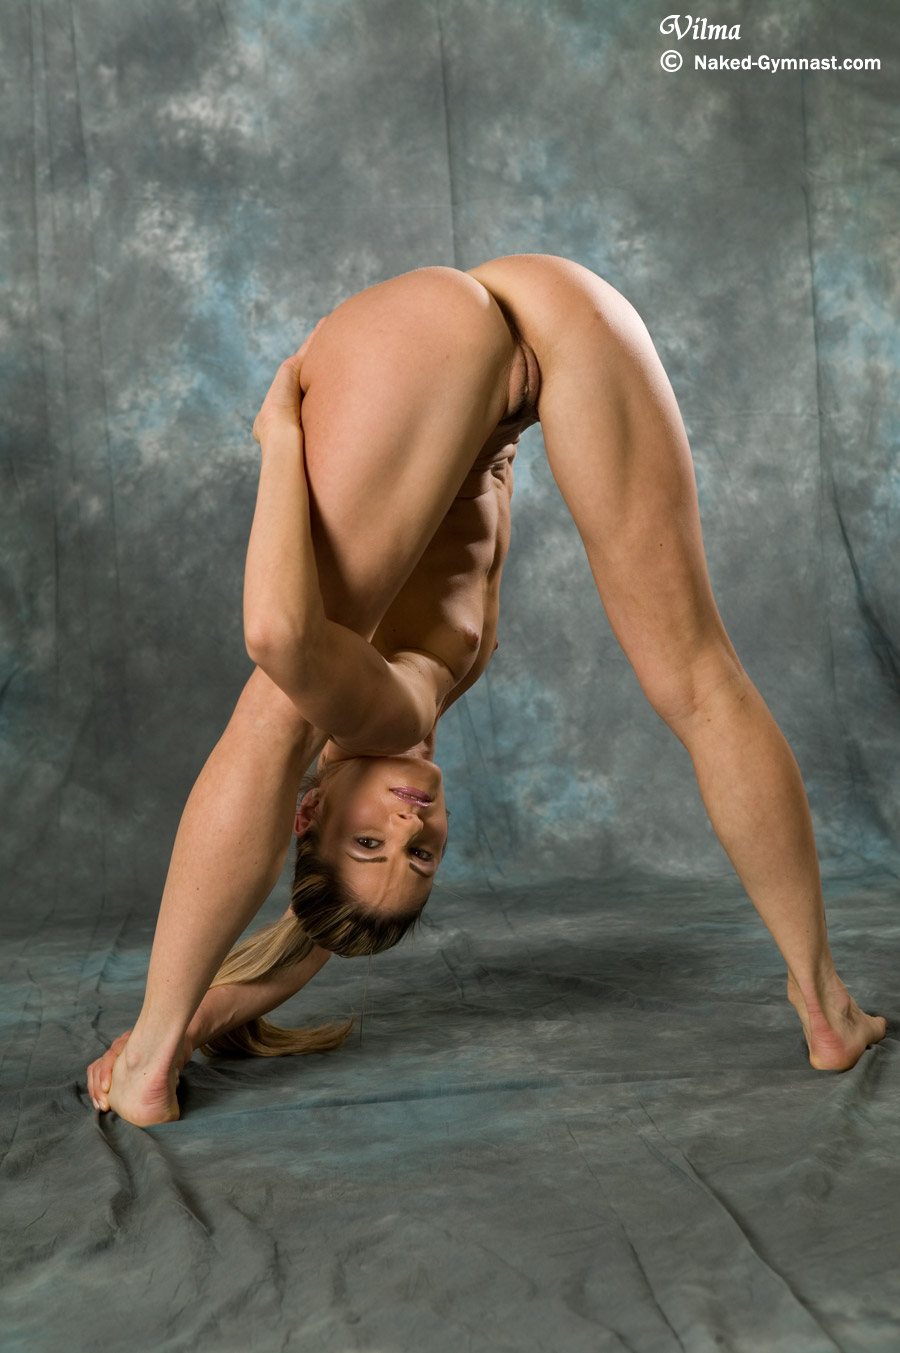 Women beautiful naked athletic Nude sports,